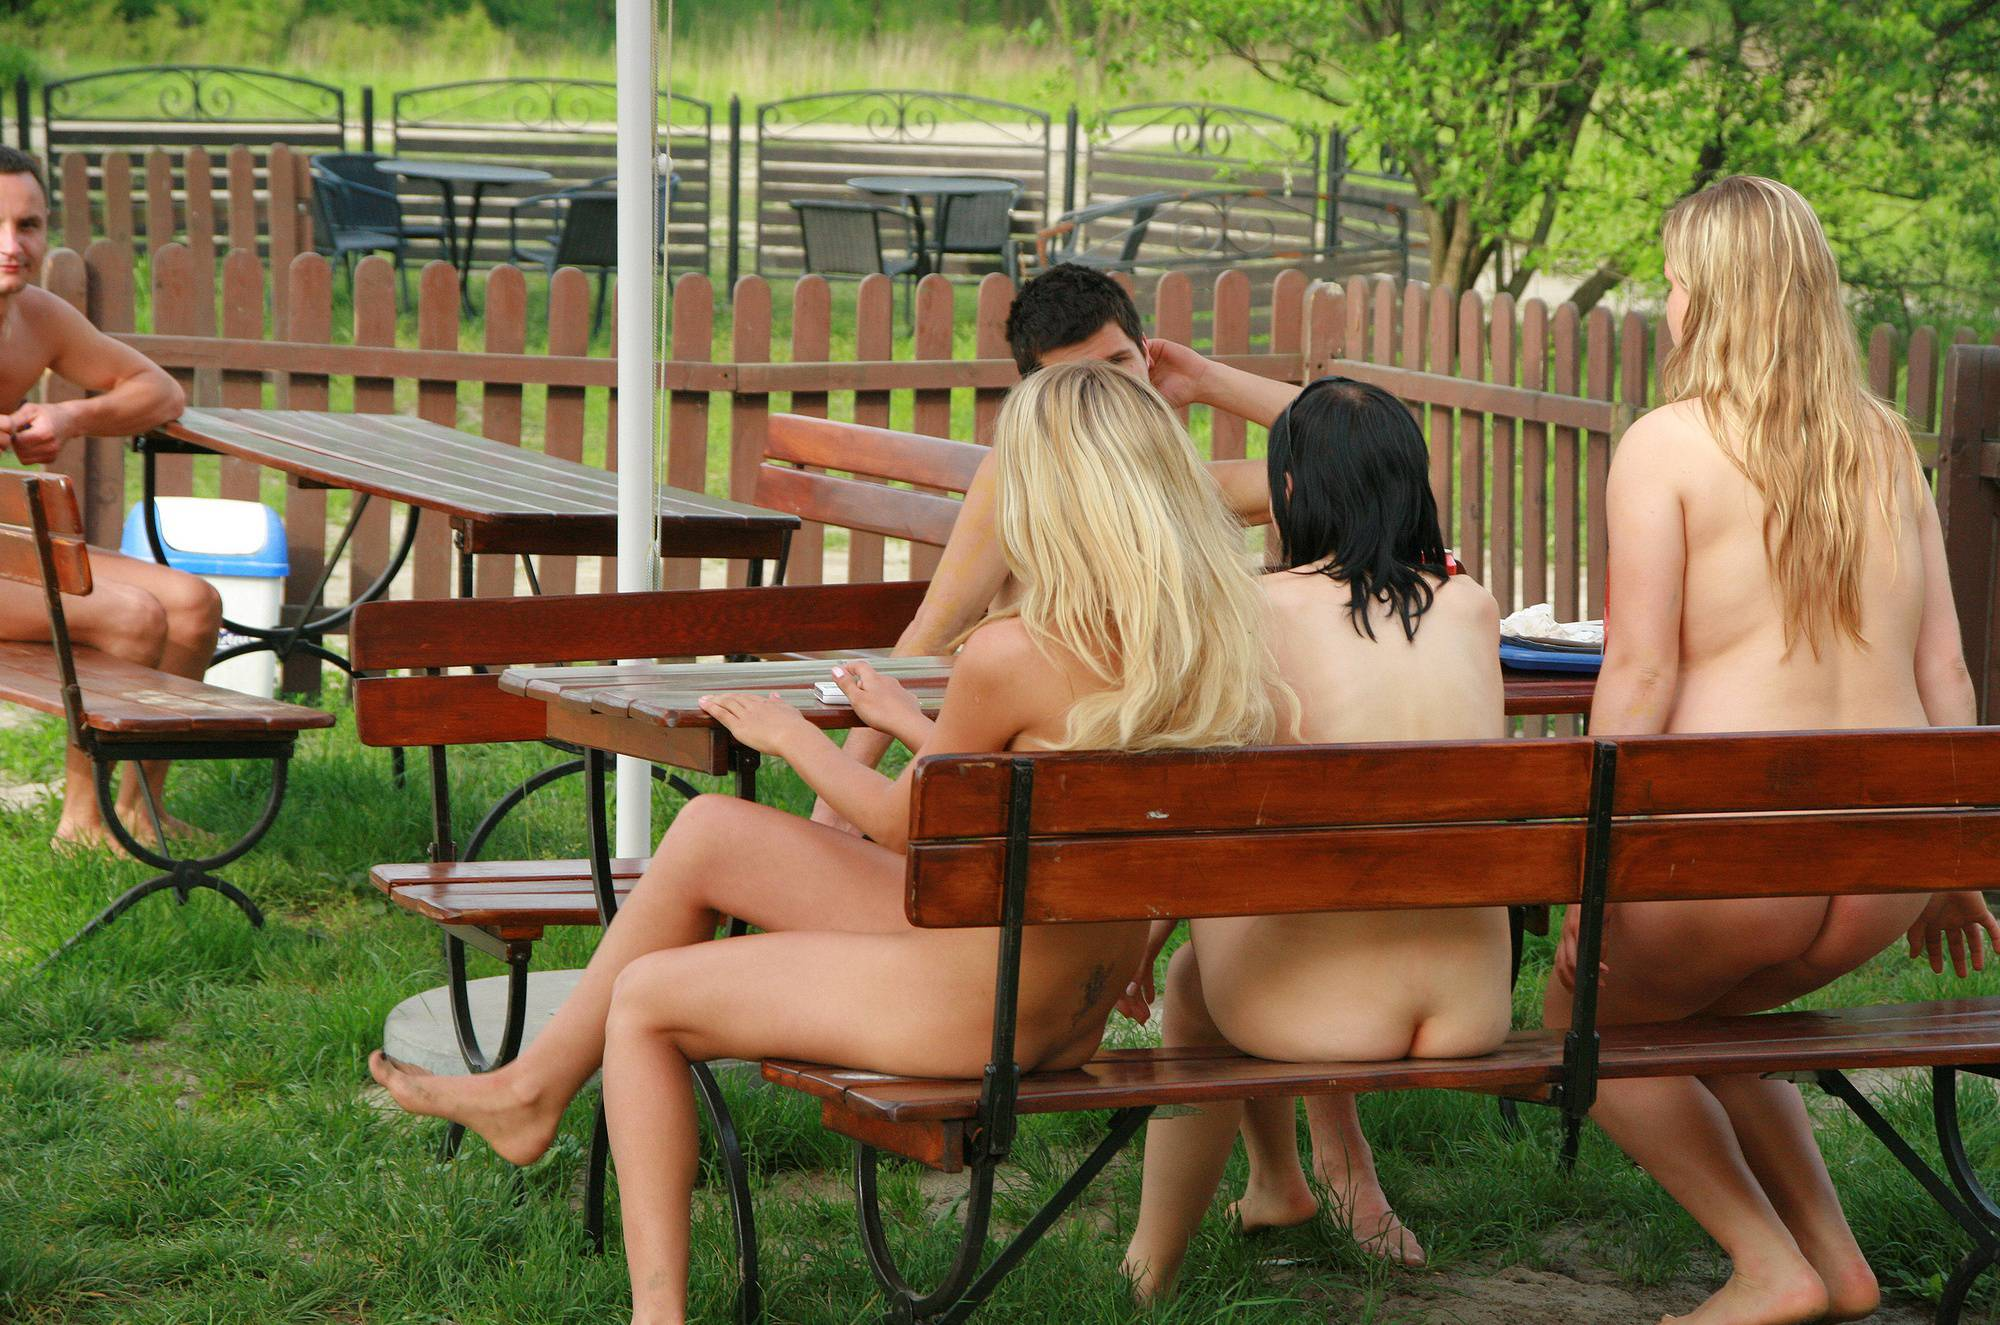 Pure Nudism Images Lake Kryspinow Eating Out - 1